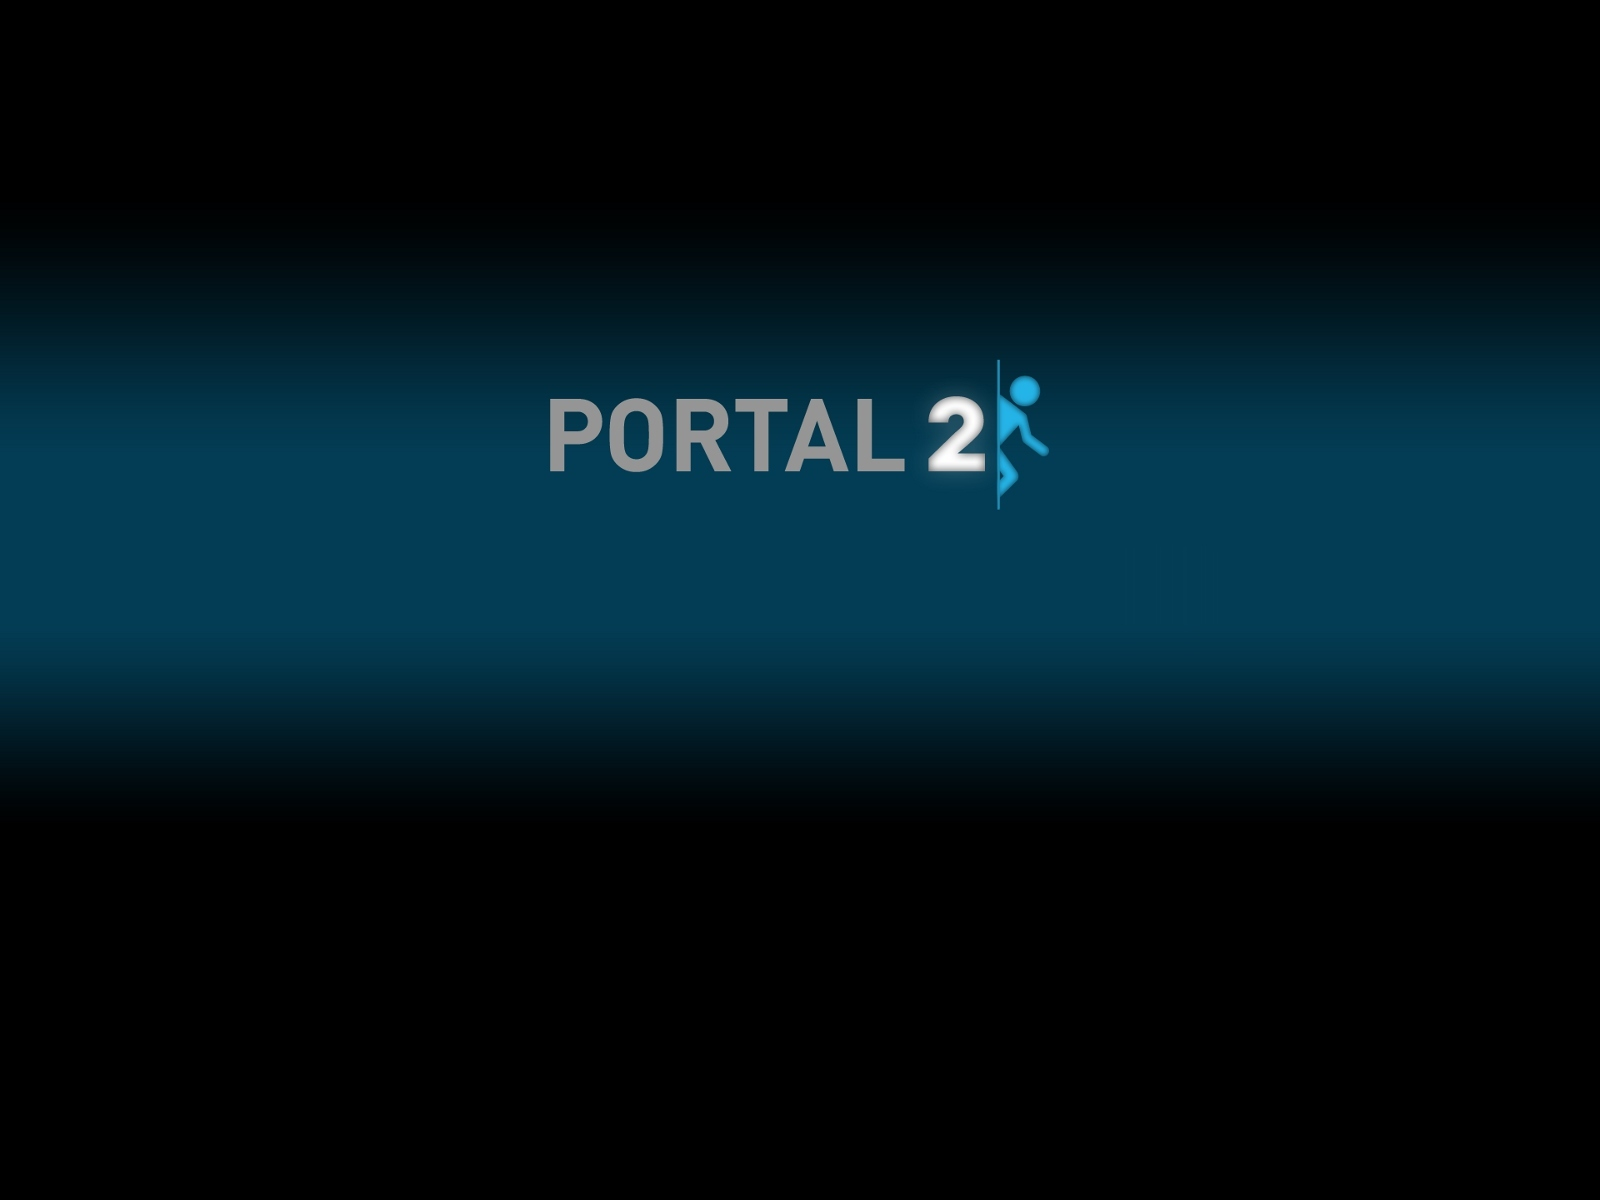 portal 2 video games HD Wallpaper